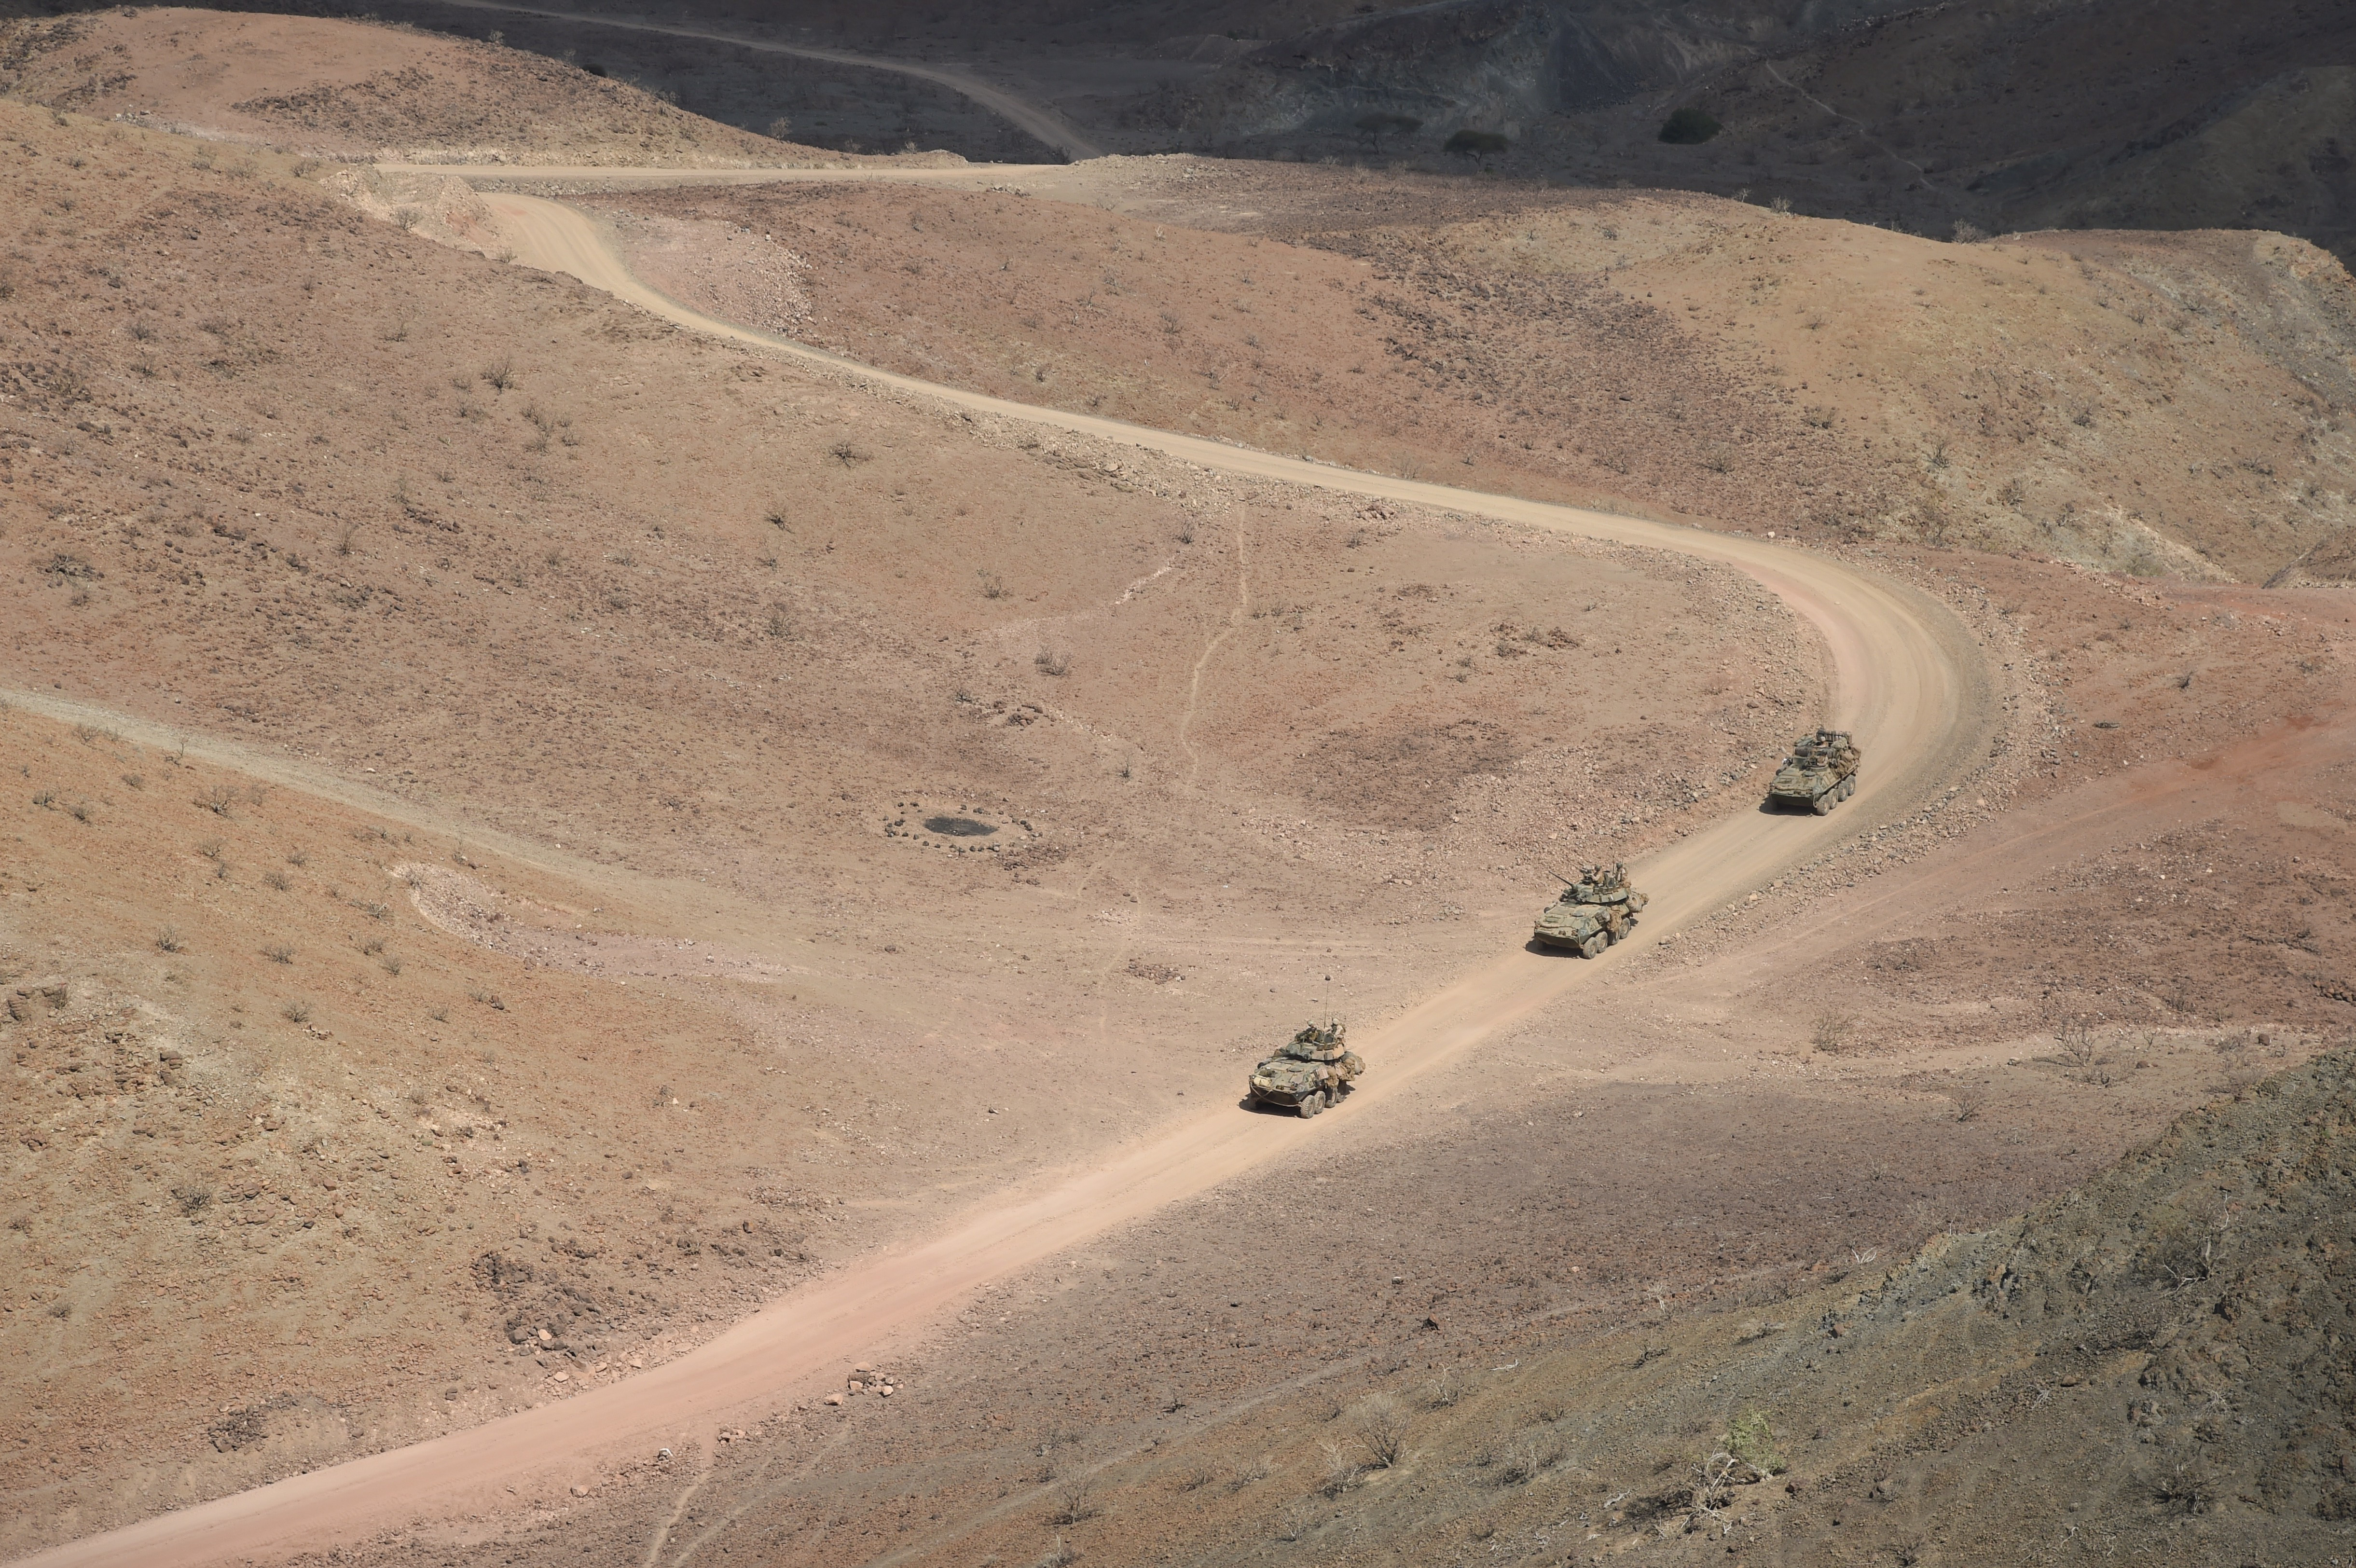 U.S. Marine Corps light armored vehicles, 11th Marine Expeditionary Unit (MEU), traverse the range during events of exercise Alligator Dagger, Dec. 18, 2016, at Arta Plage, Djibouti. The exercise allows the MEU to get off ship and conduct combat sustainment training to maintain their respective skills and proficiencies. (U.S. Air National Guard photo by Staff Sgt. Penny Snoozy)